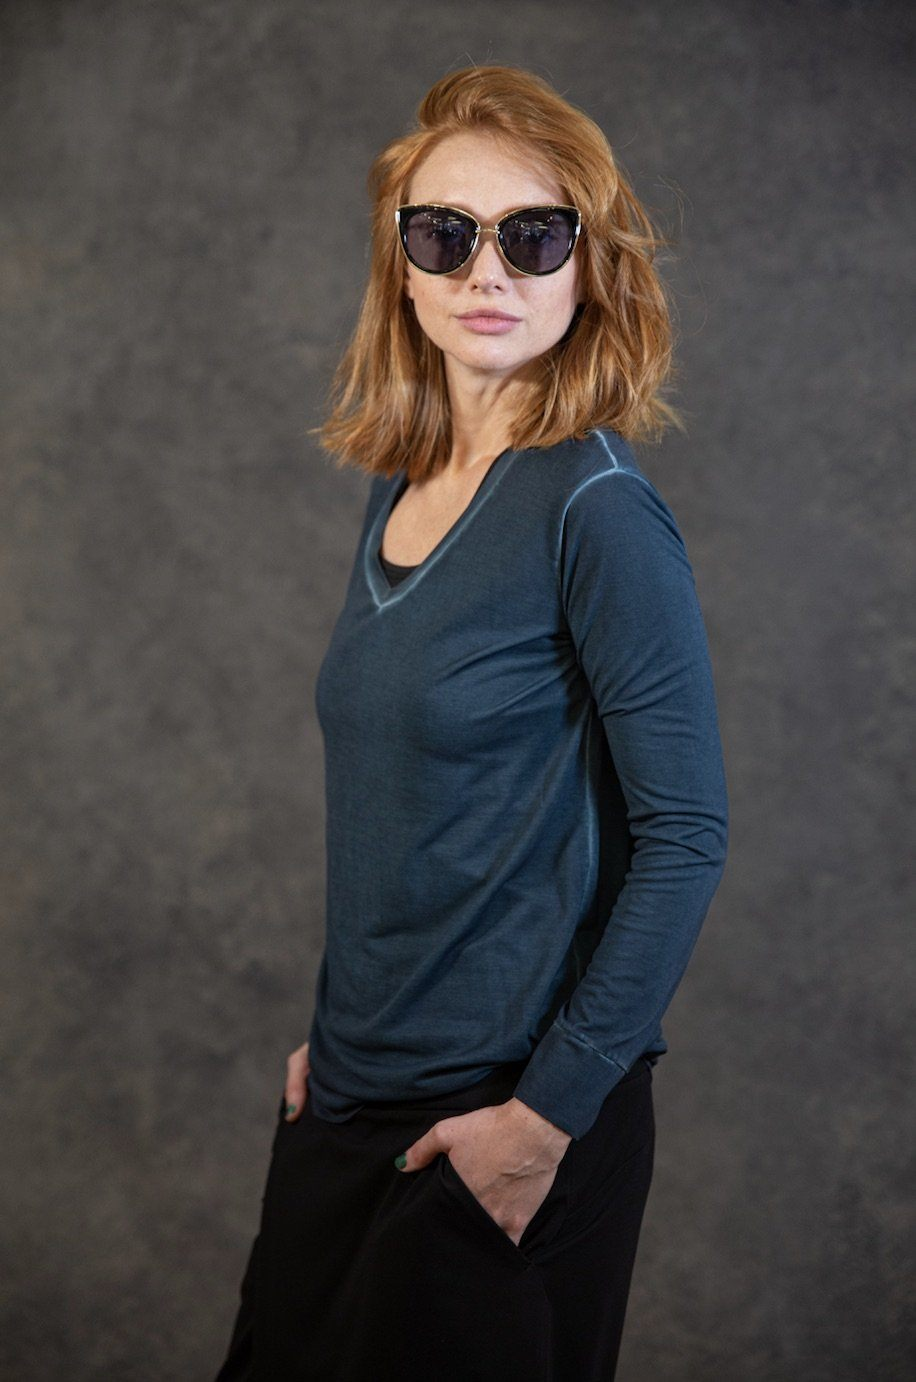 V-Neck Tee (Dyed Version) Tops The Eight Senses® Dark Teal XS